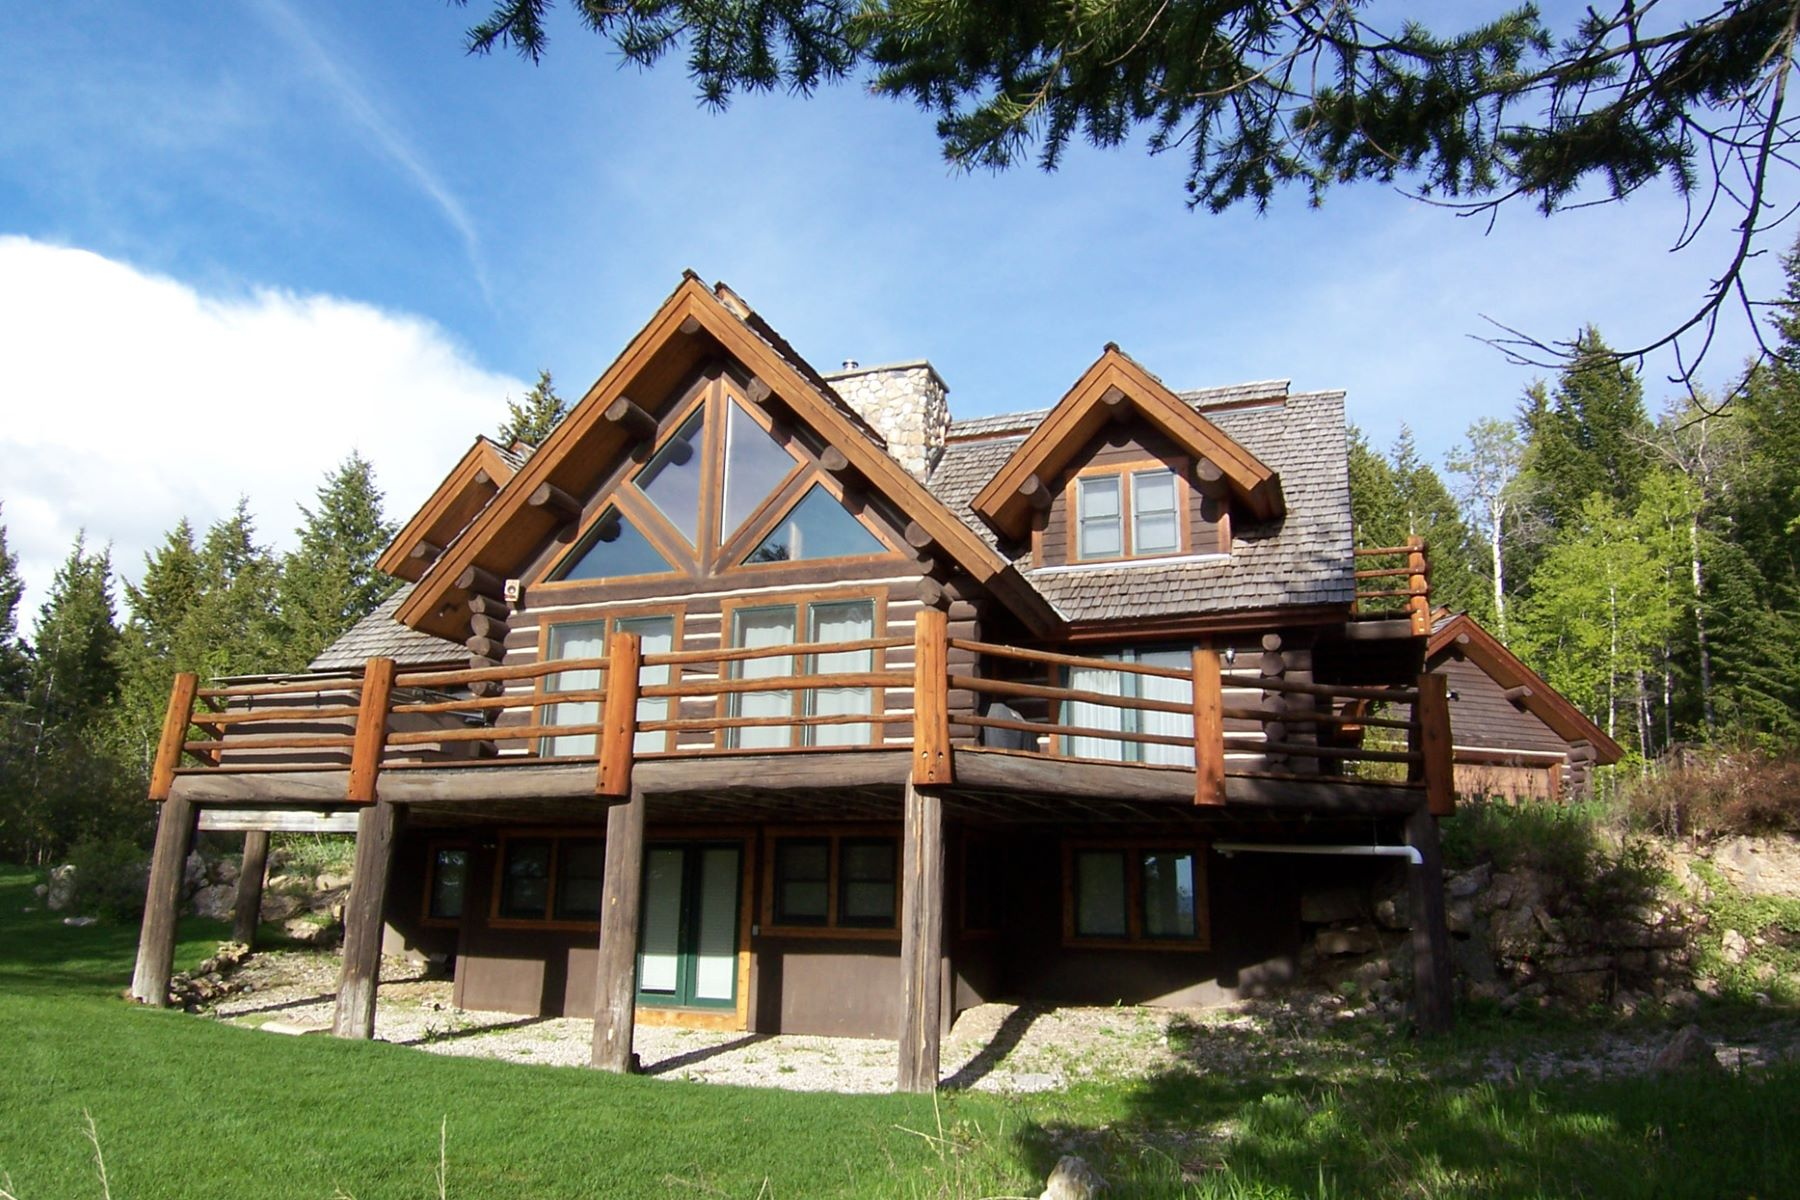 Single Family Home for Sale at Handcrafted Log Home in the Trees 3310 Sorensen Creek Drive Victor, Idaho, 83455 Jackson Hole, United States